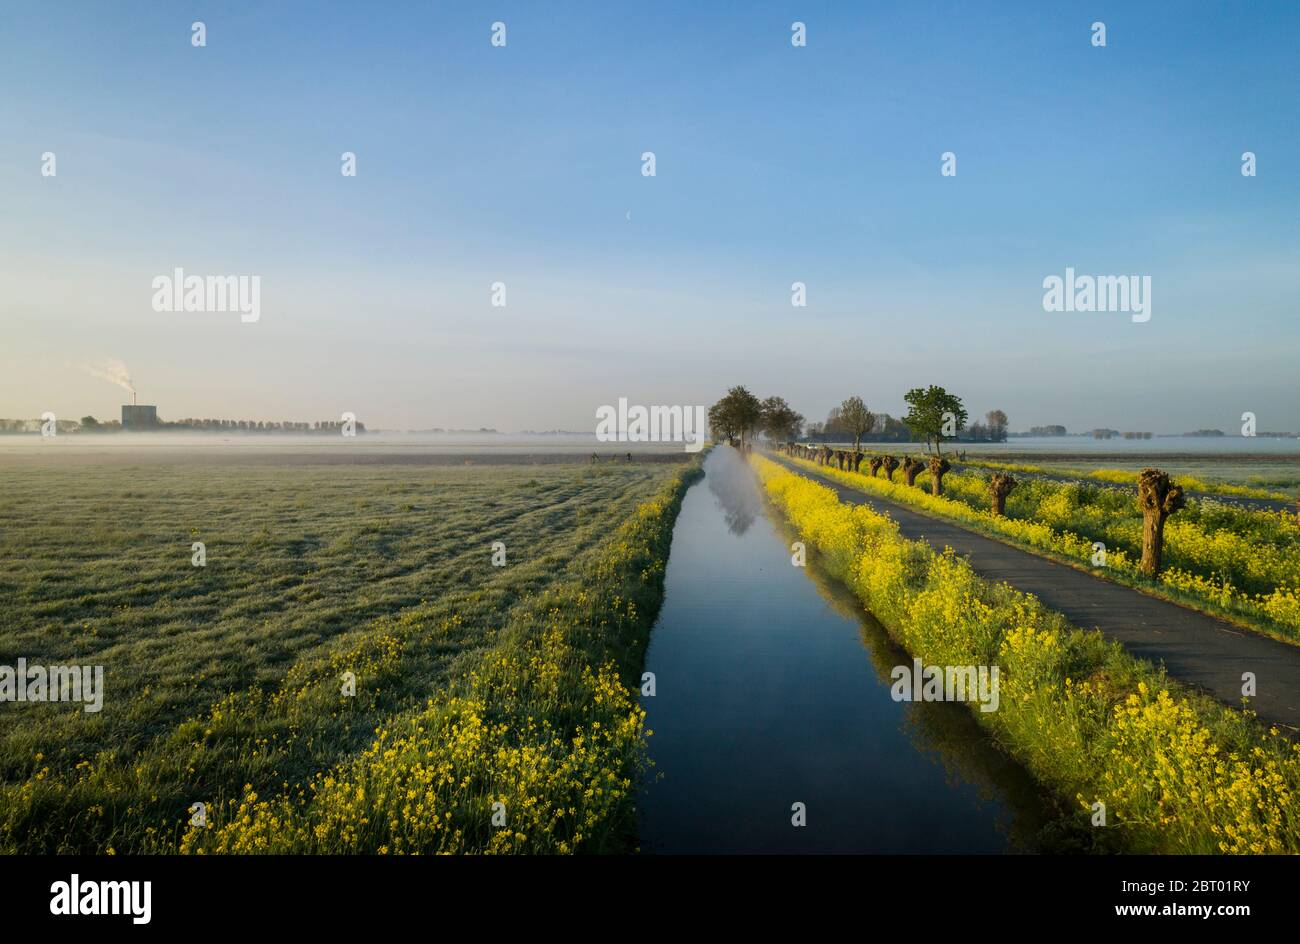 Early morning view of fields and path along drainage ditch in coastal area of The Netherlands in spring. Stock Photo